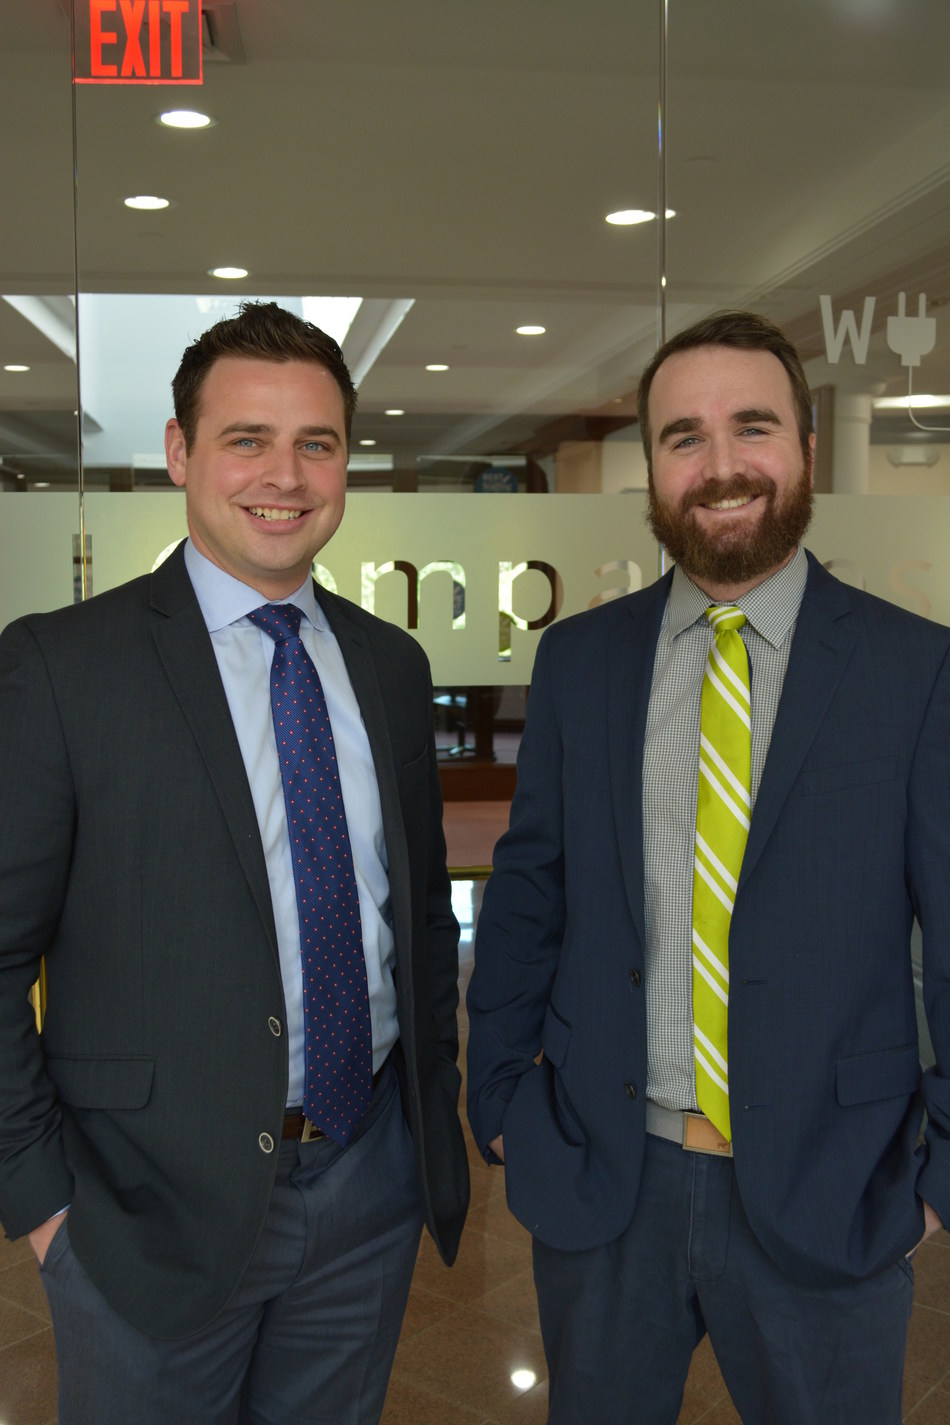 L to R, Mark Agostinelli, Regional VP and Patrick Davis, VP Business Operations